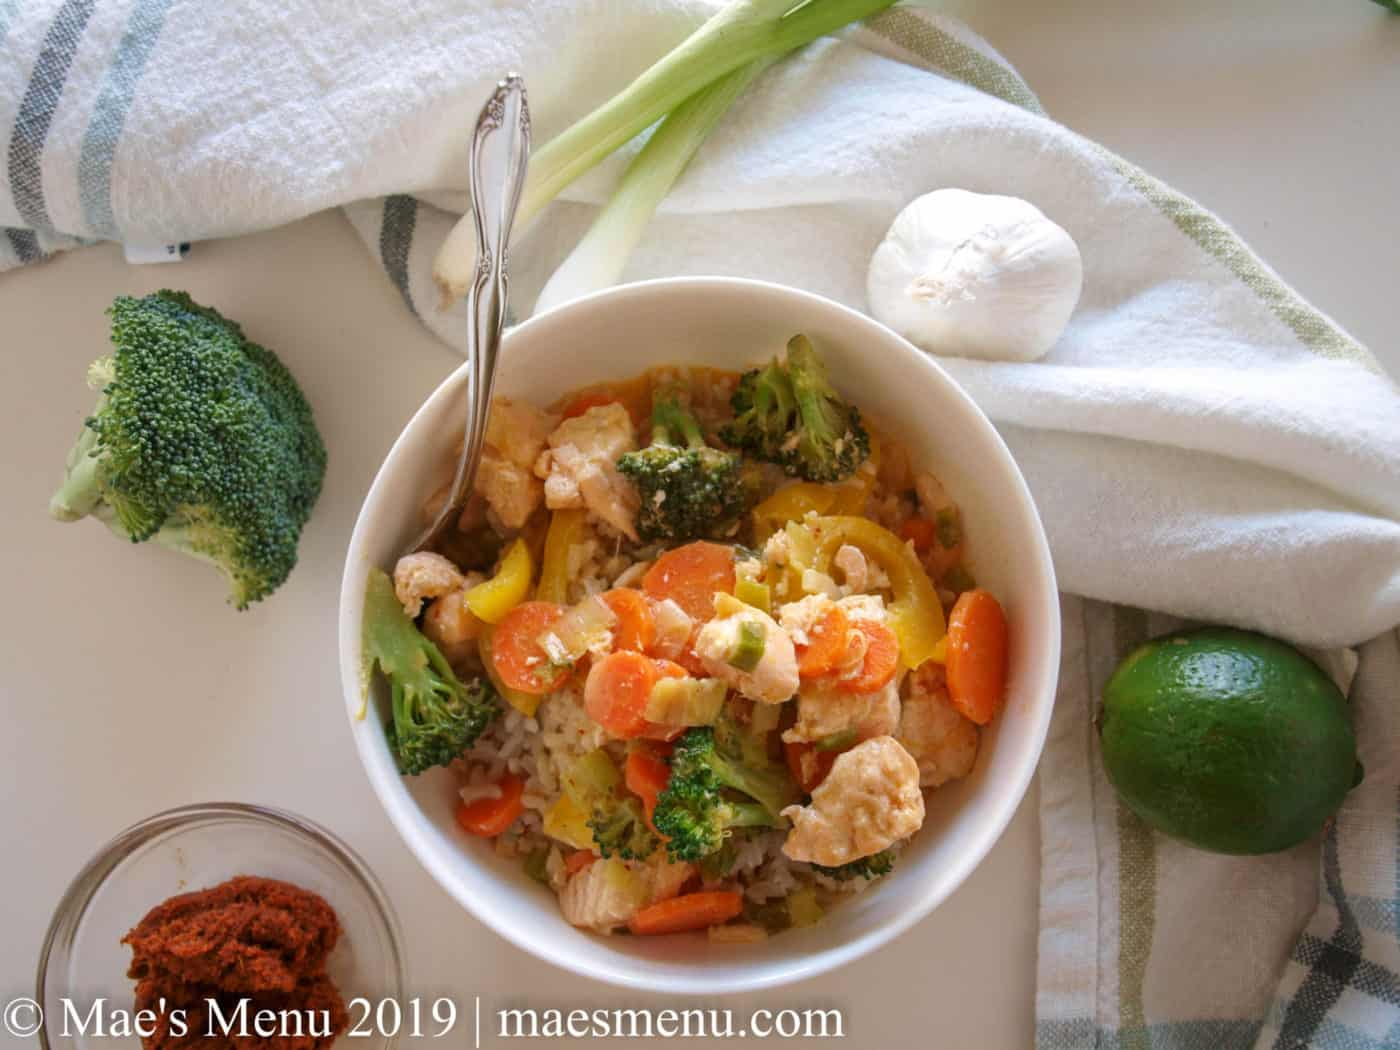 White bowl of Thai Salmon Panang Curry next to broccoli, curry paste, lime, garlic, and green onions and a white dish towel.